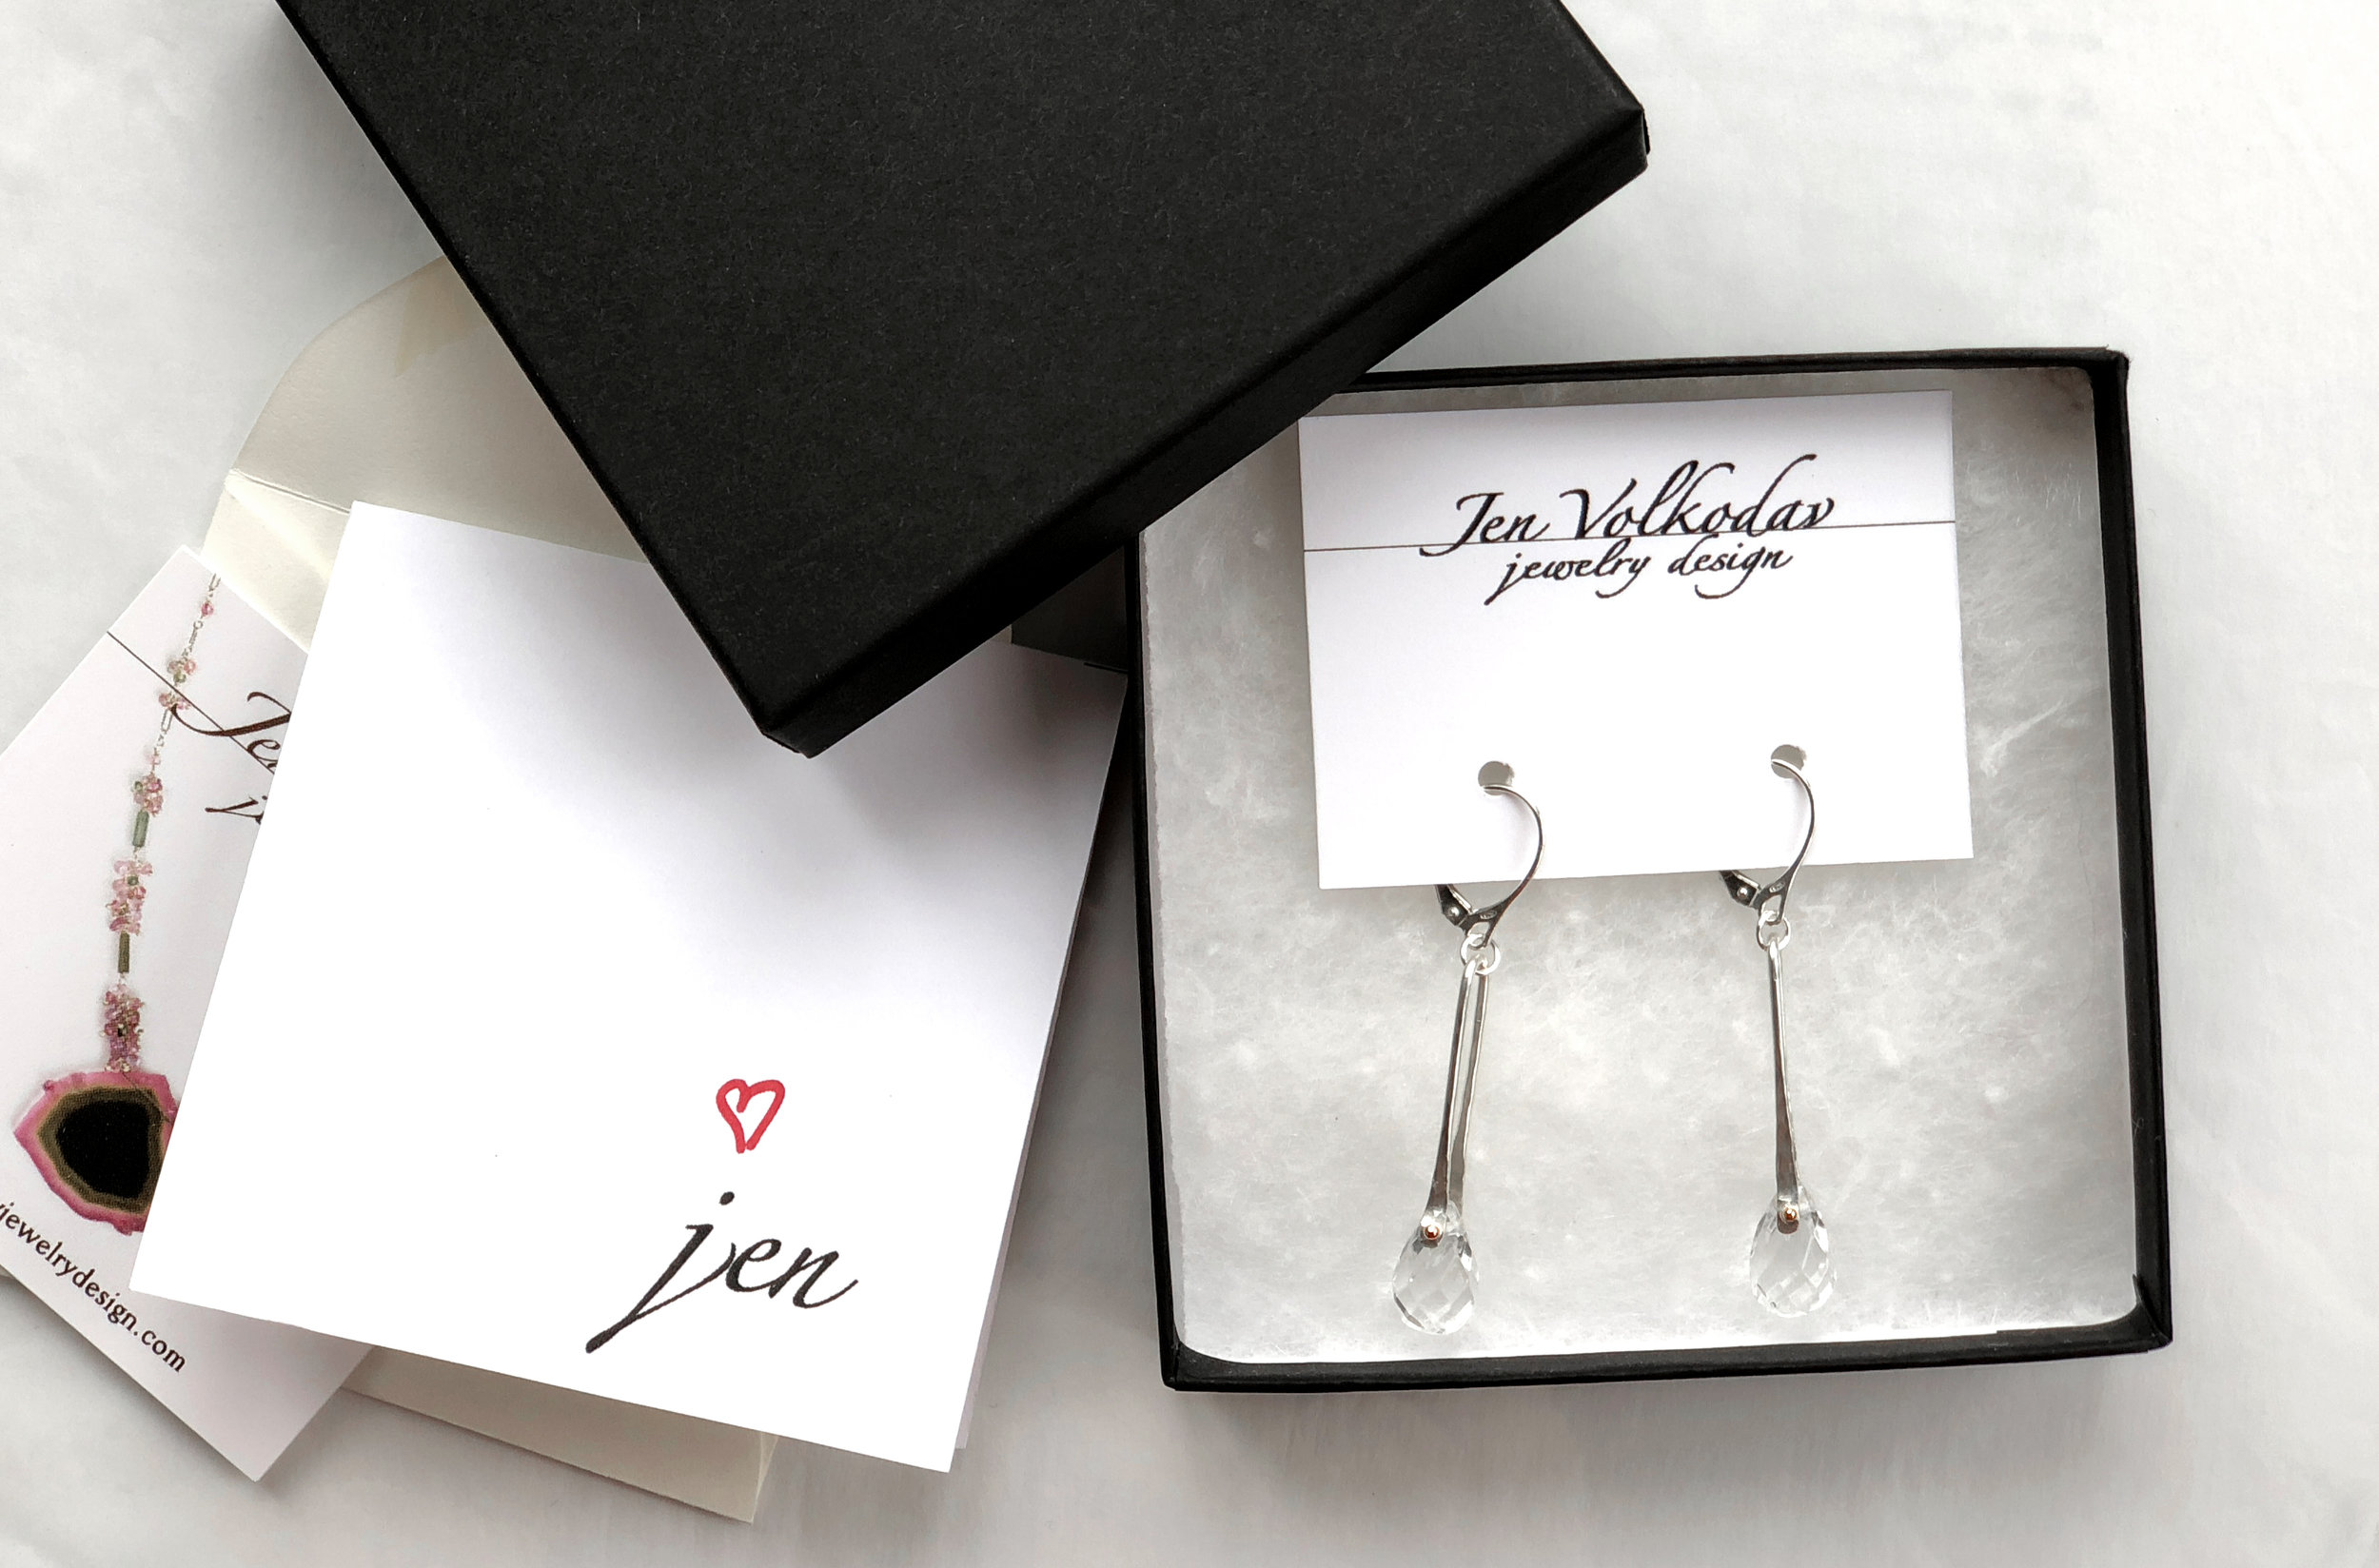 Clear Quartz Earrings in Sterling Silver and rose gold as gifted to attending celebrities at the 2019 GBK Golden Globes Gift Lounge.